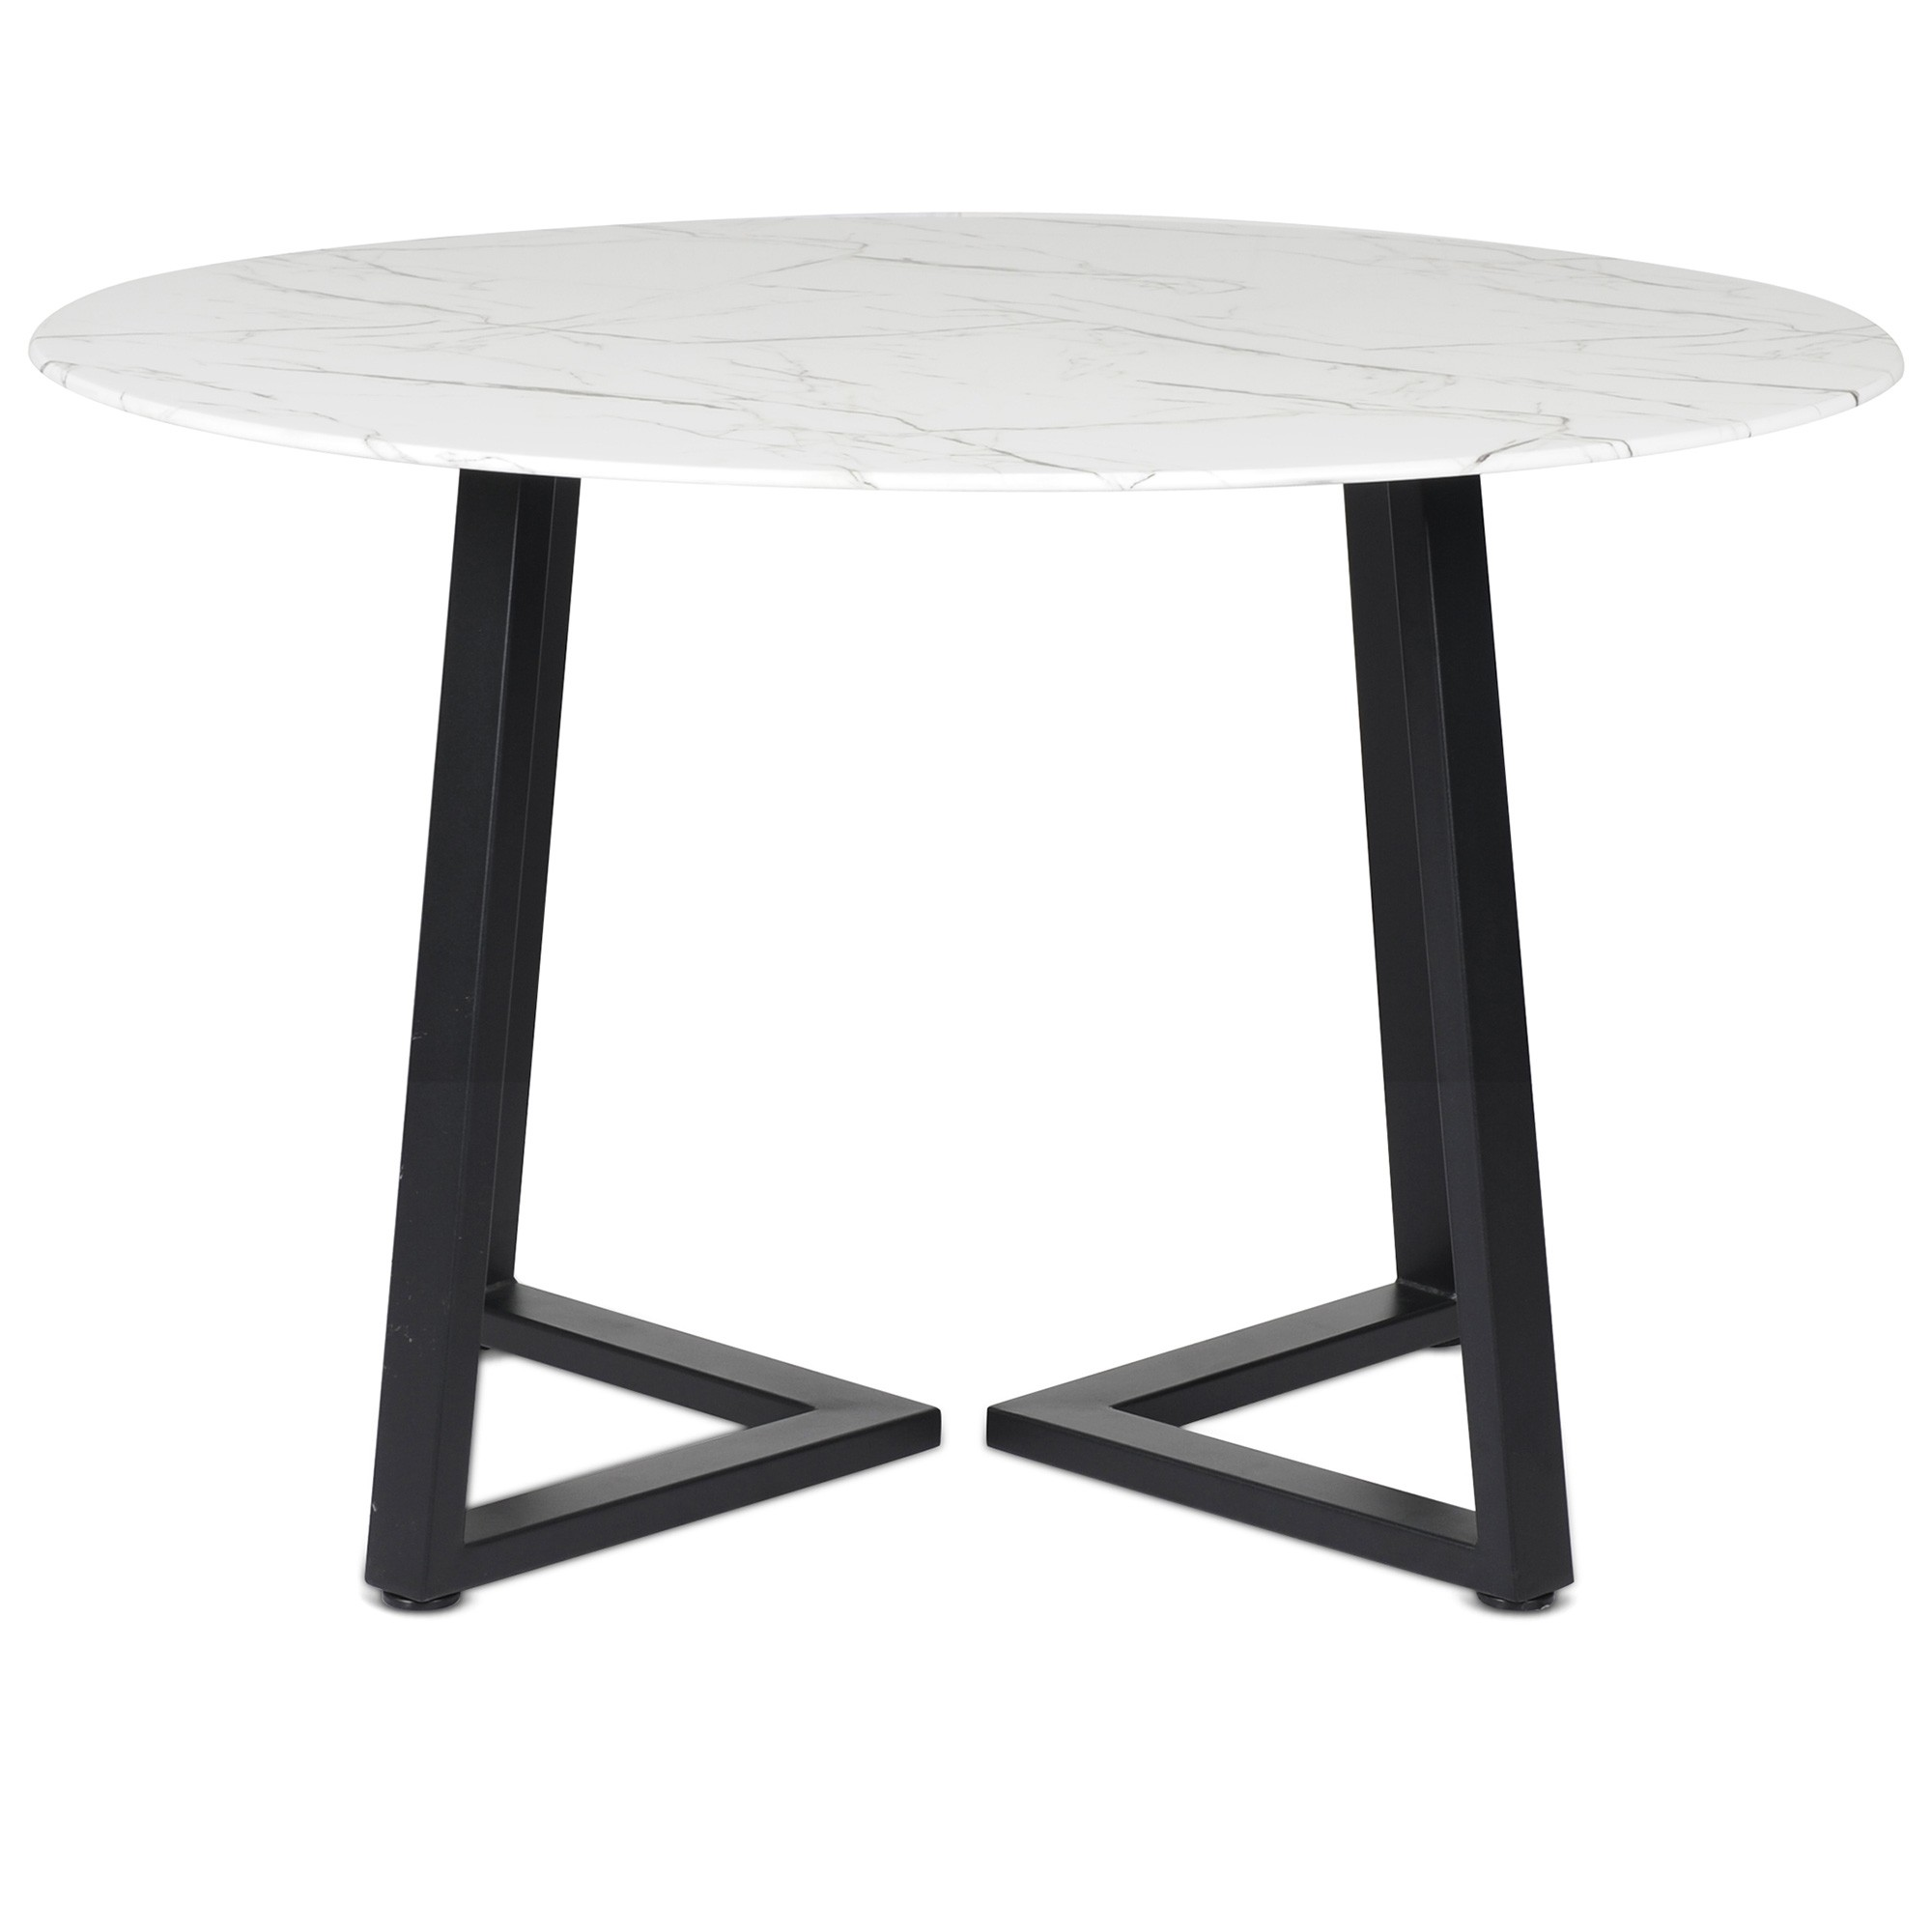 Kingsley Marble Effect Round Dining Table, 120cm